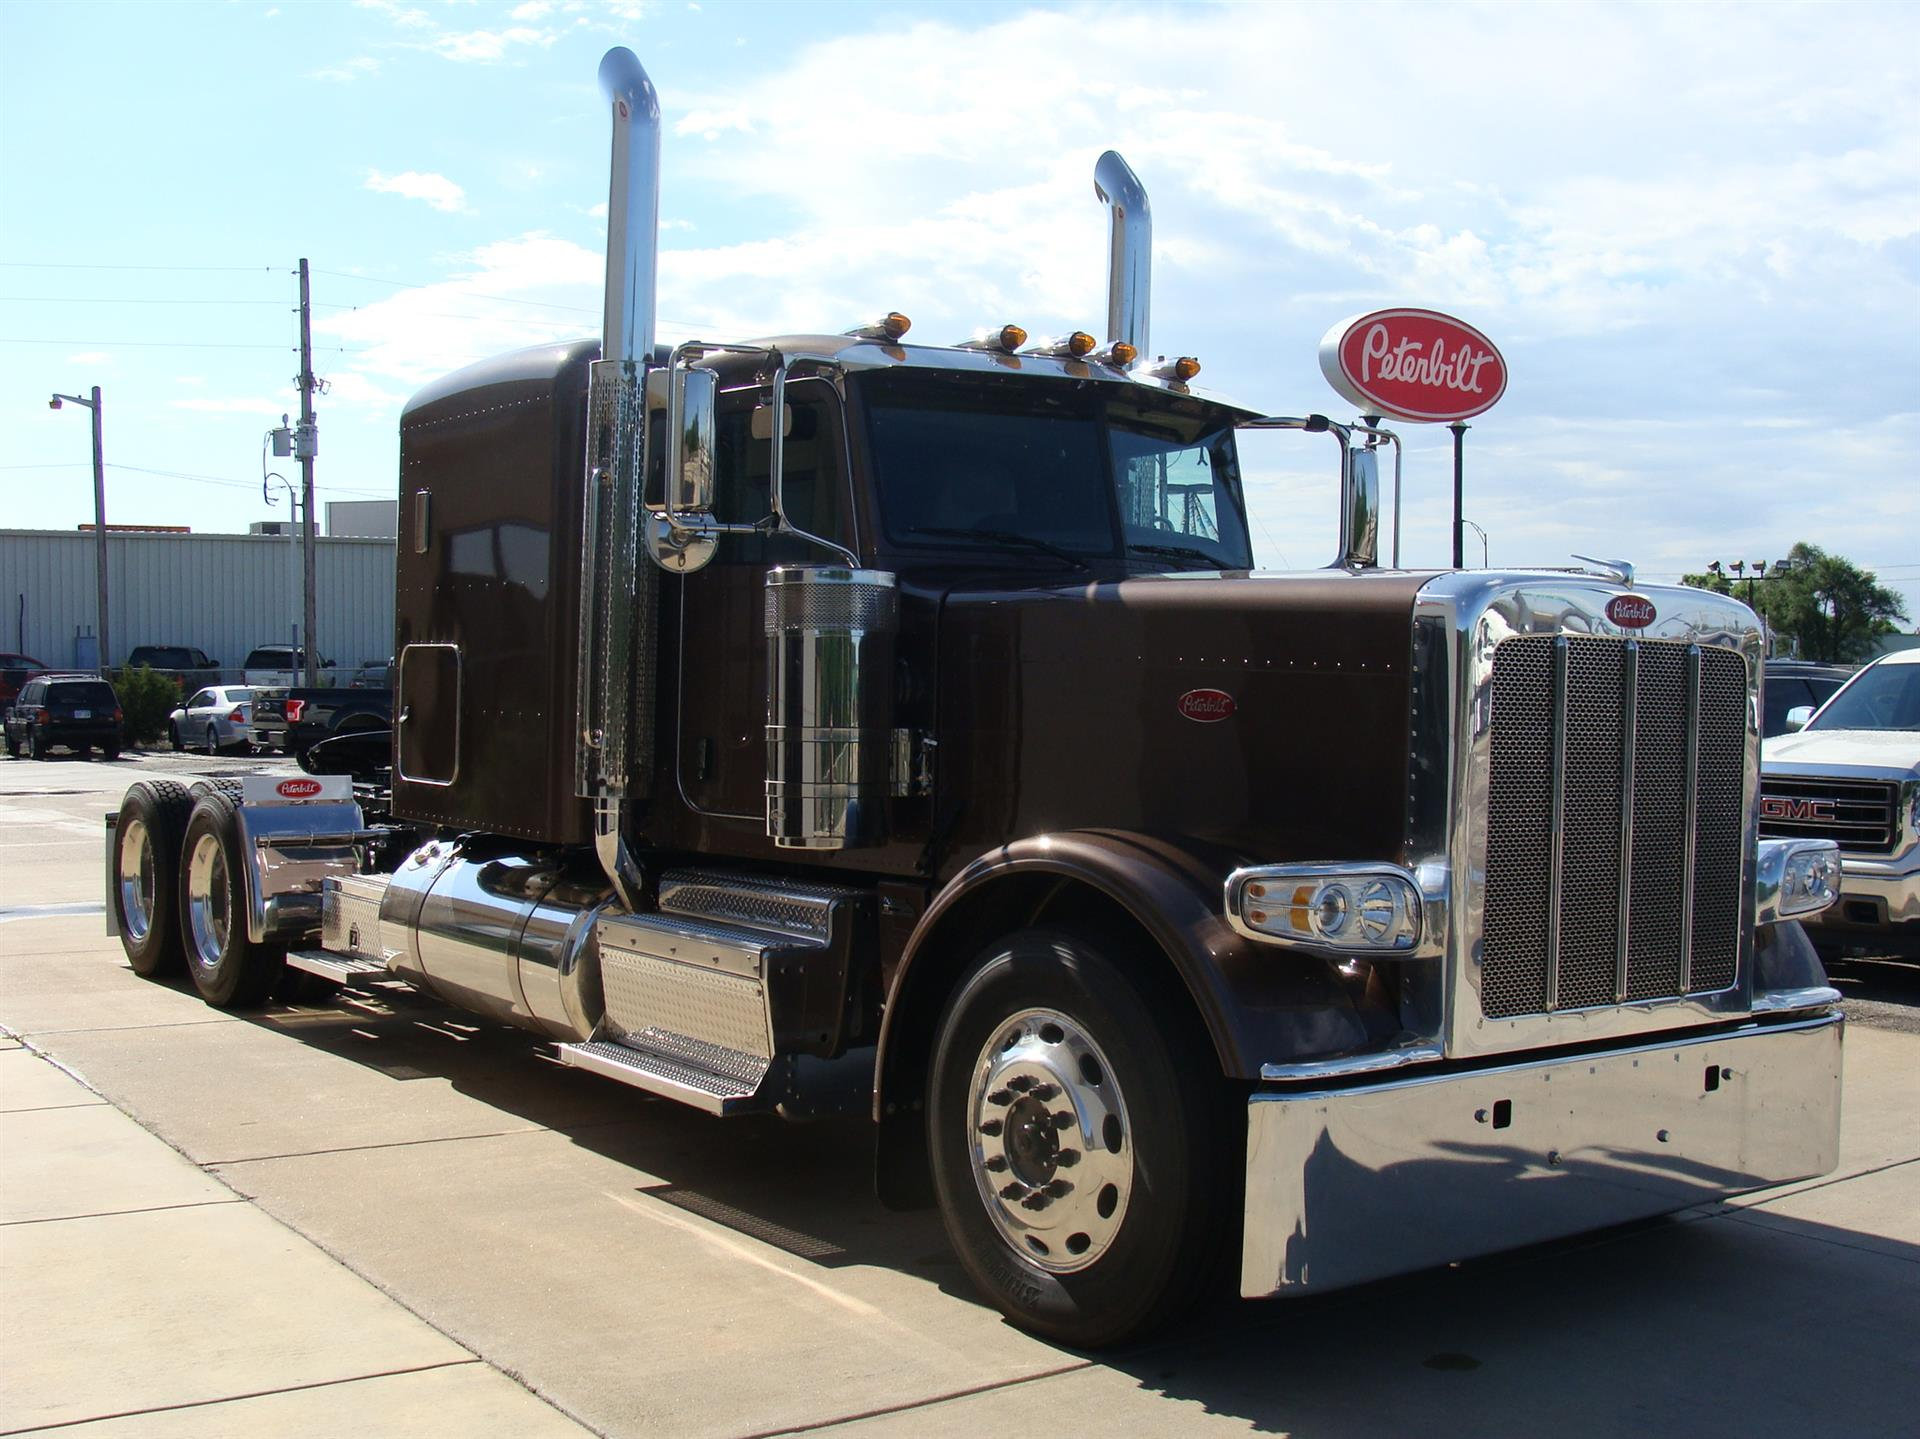 100 Peterbilt Peterbilt 359 Wallpaper 2432x1622